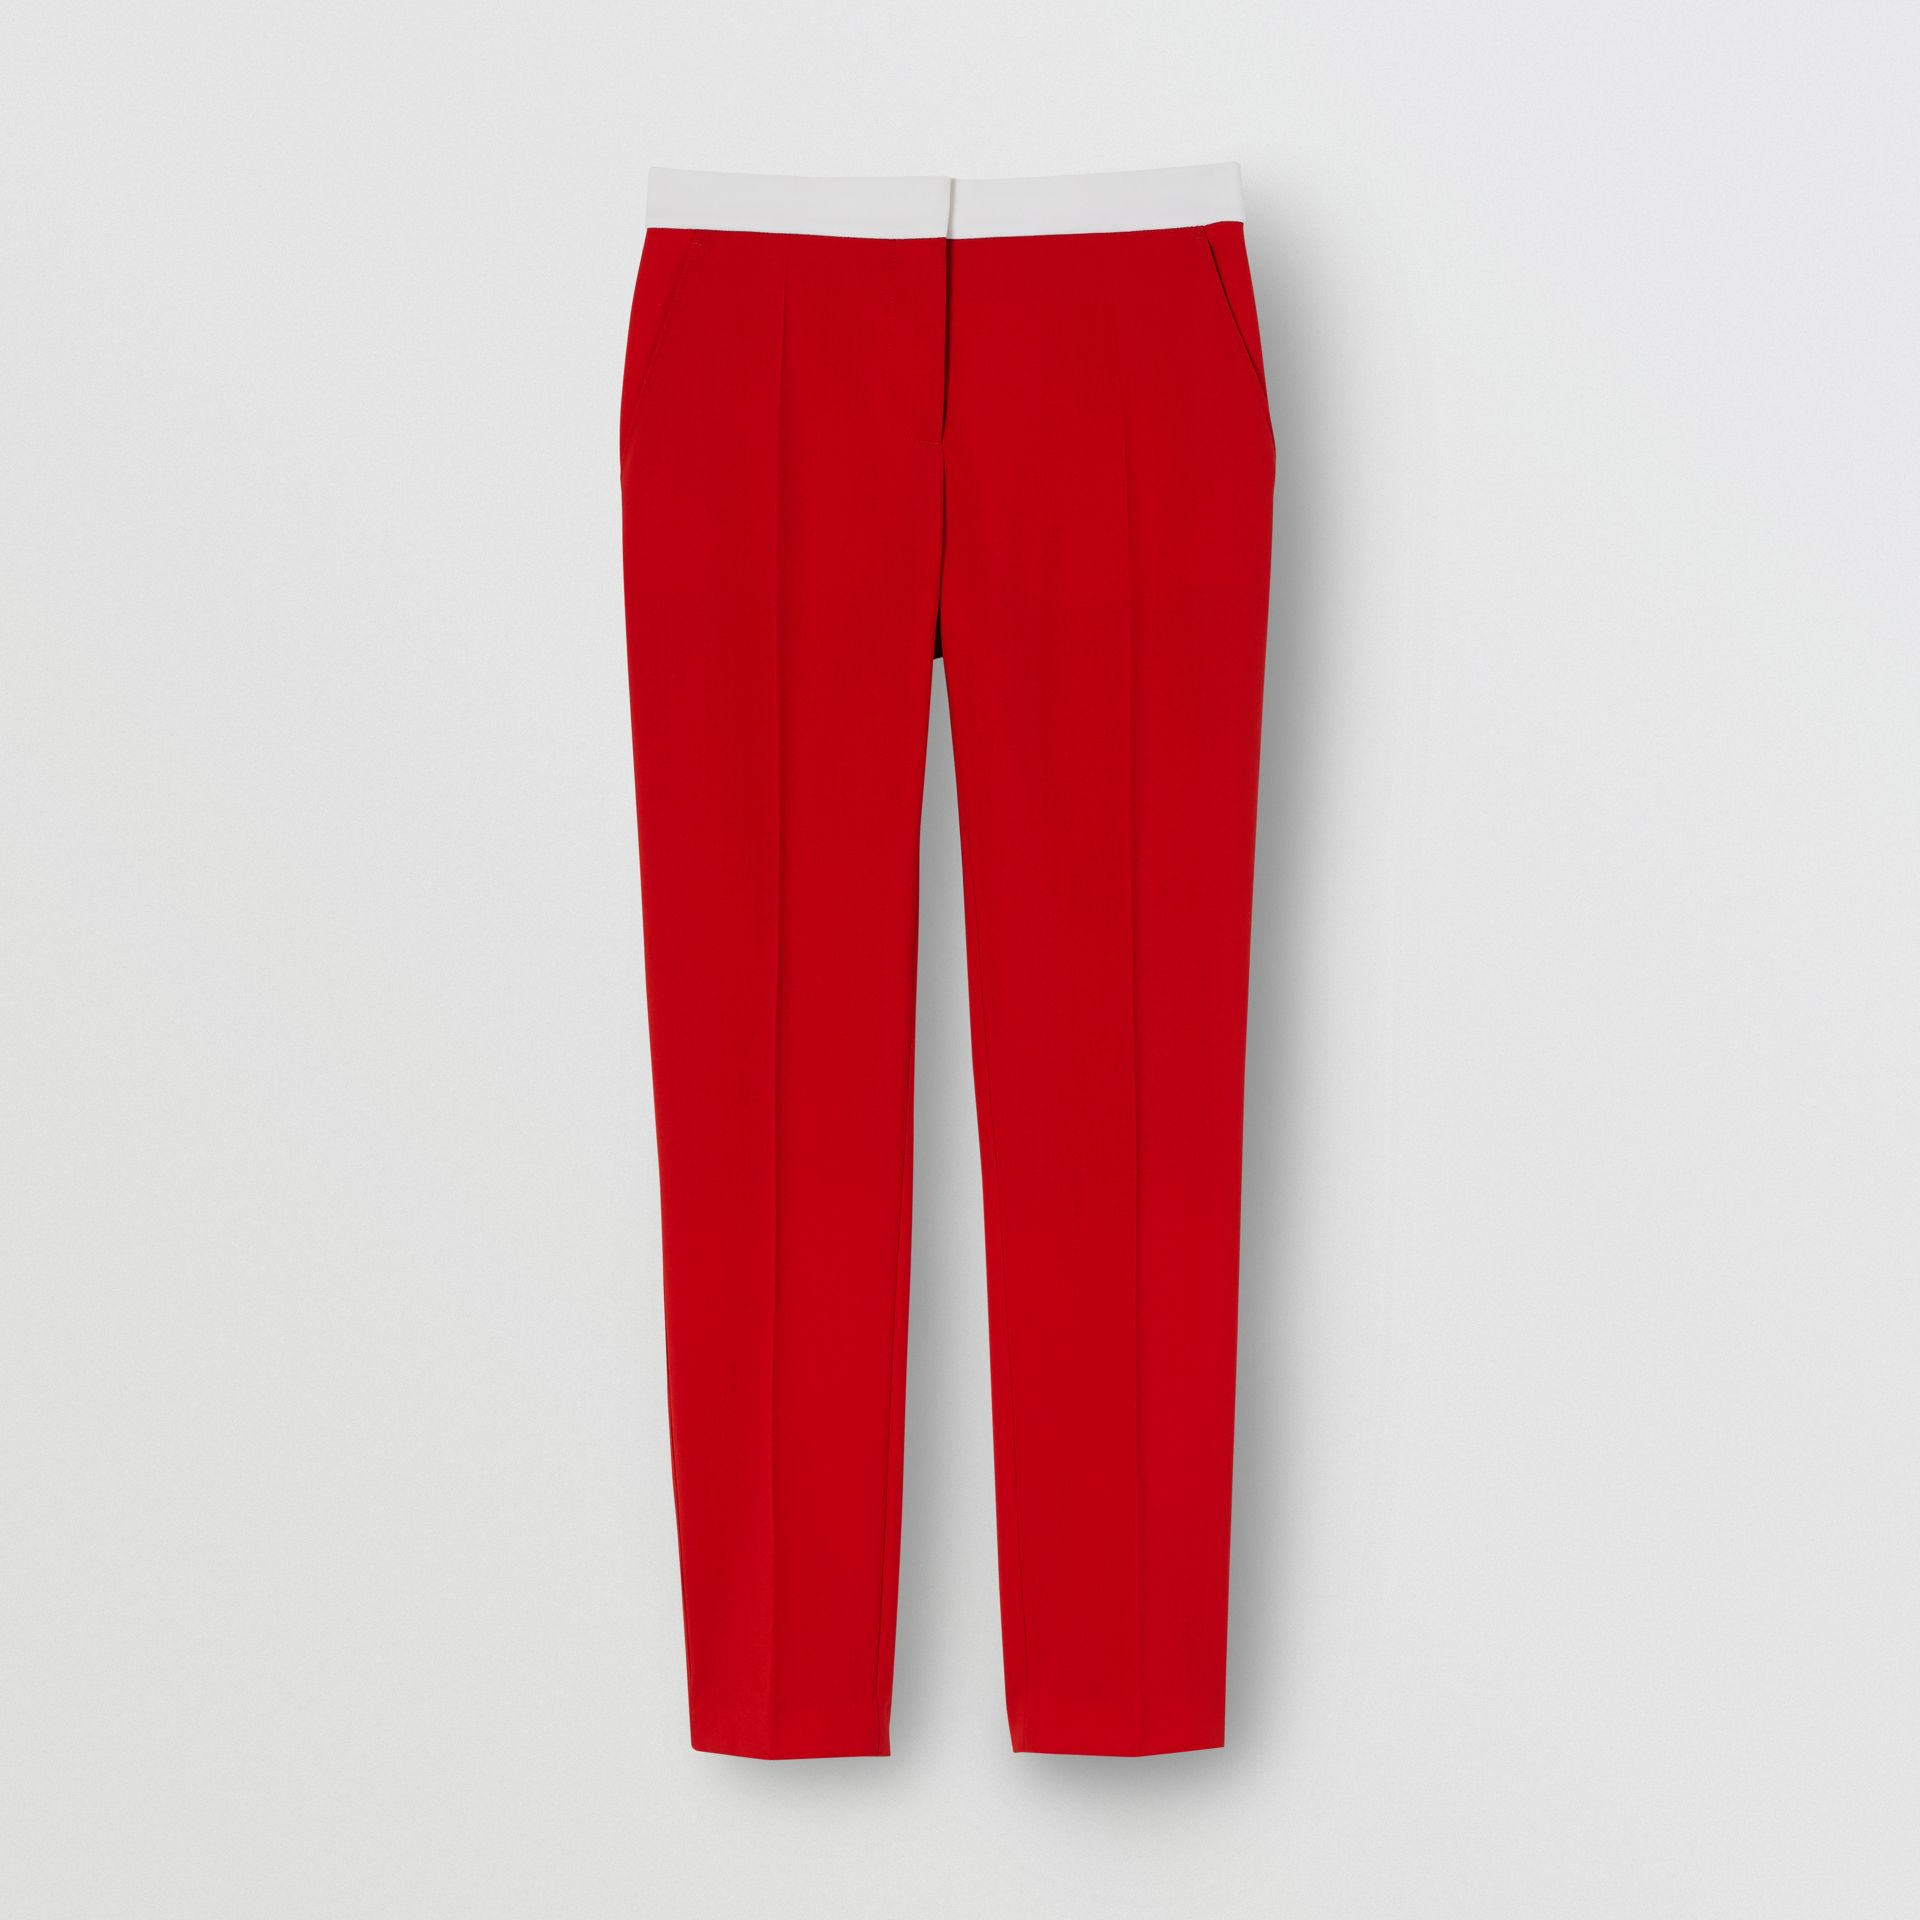 Two-tone Wool Tailored Trousers in Bright Red - Women | Burberry - gallery image 3